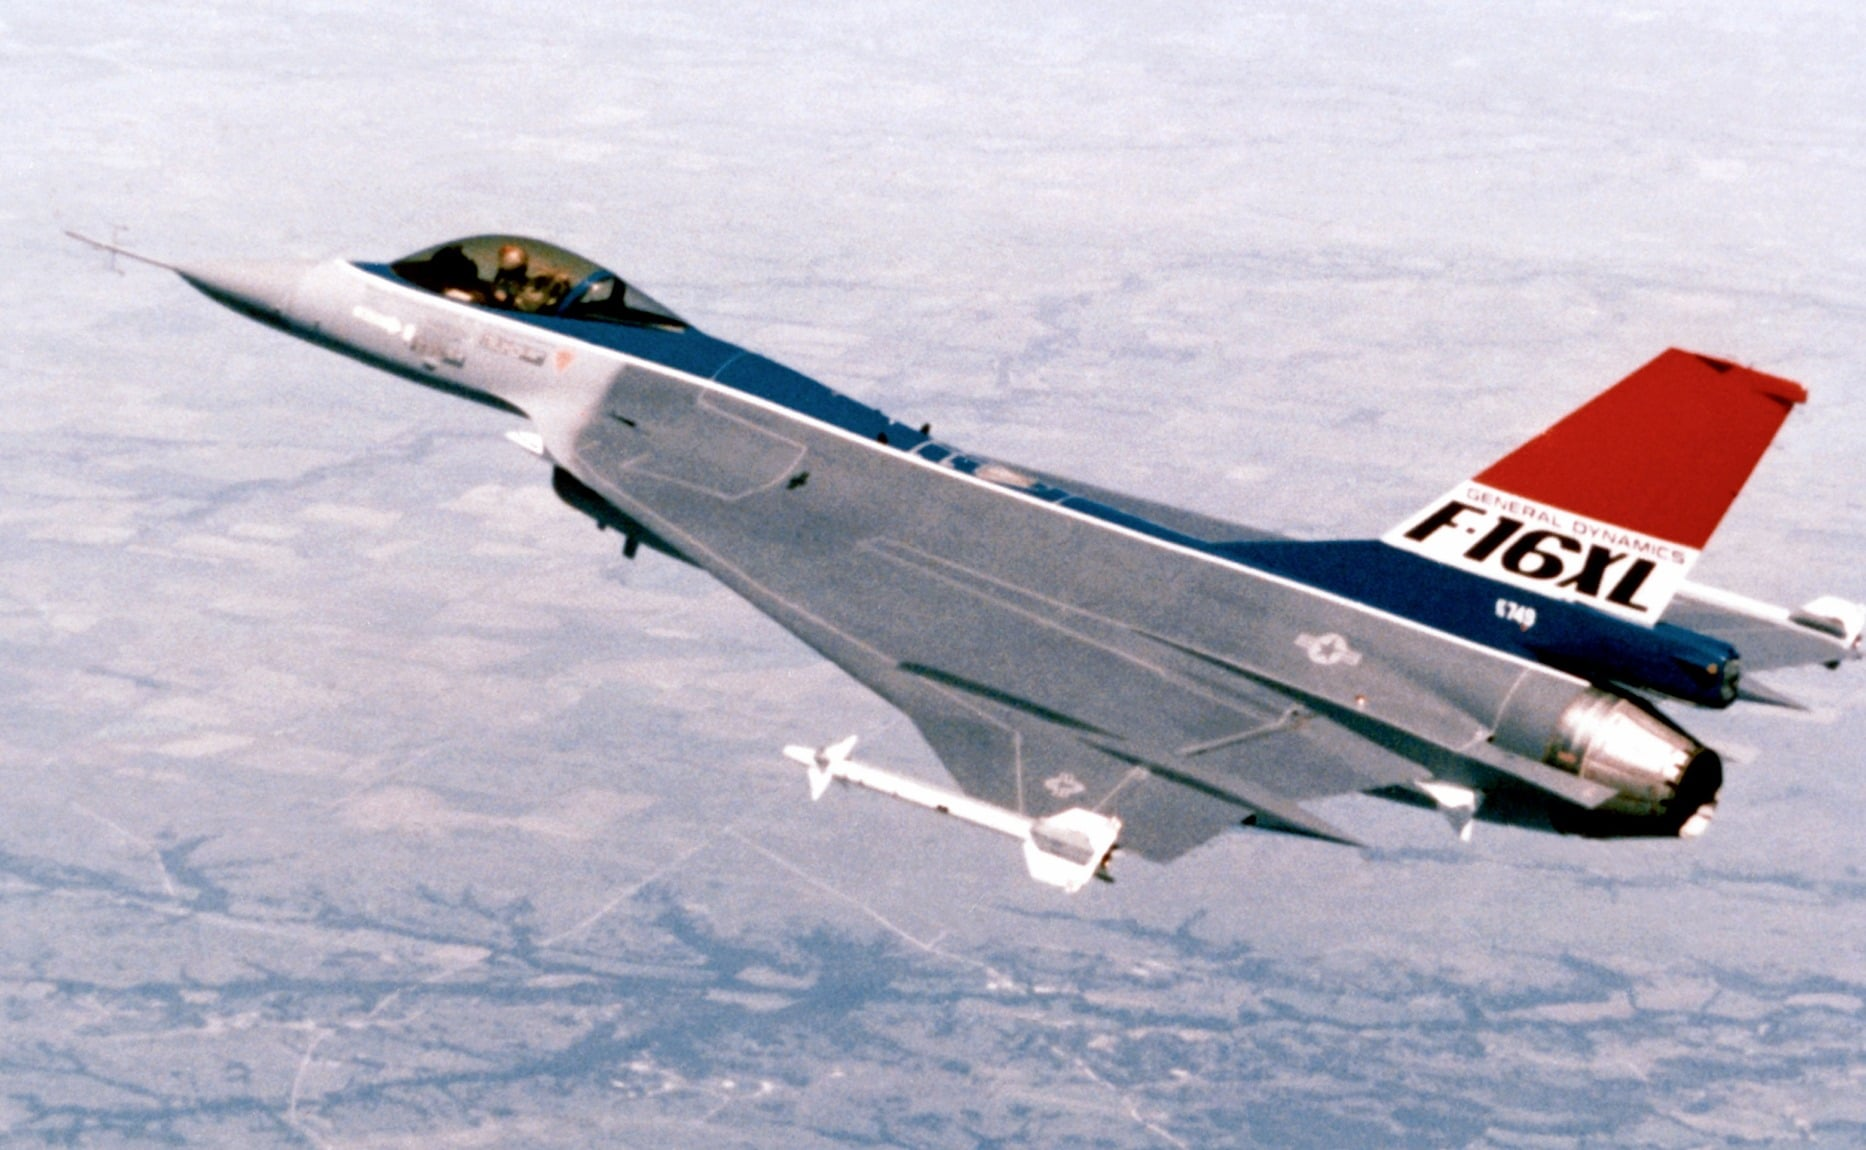 The F 16xl This Advanced F 16 Variant Lost Out To The F